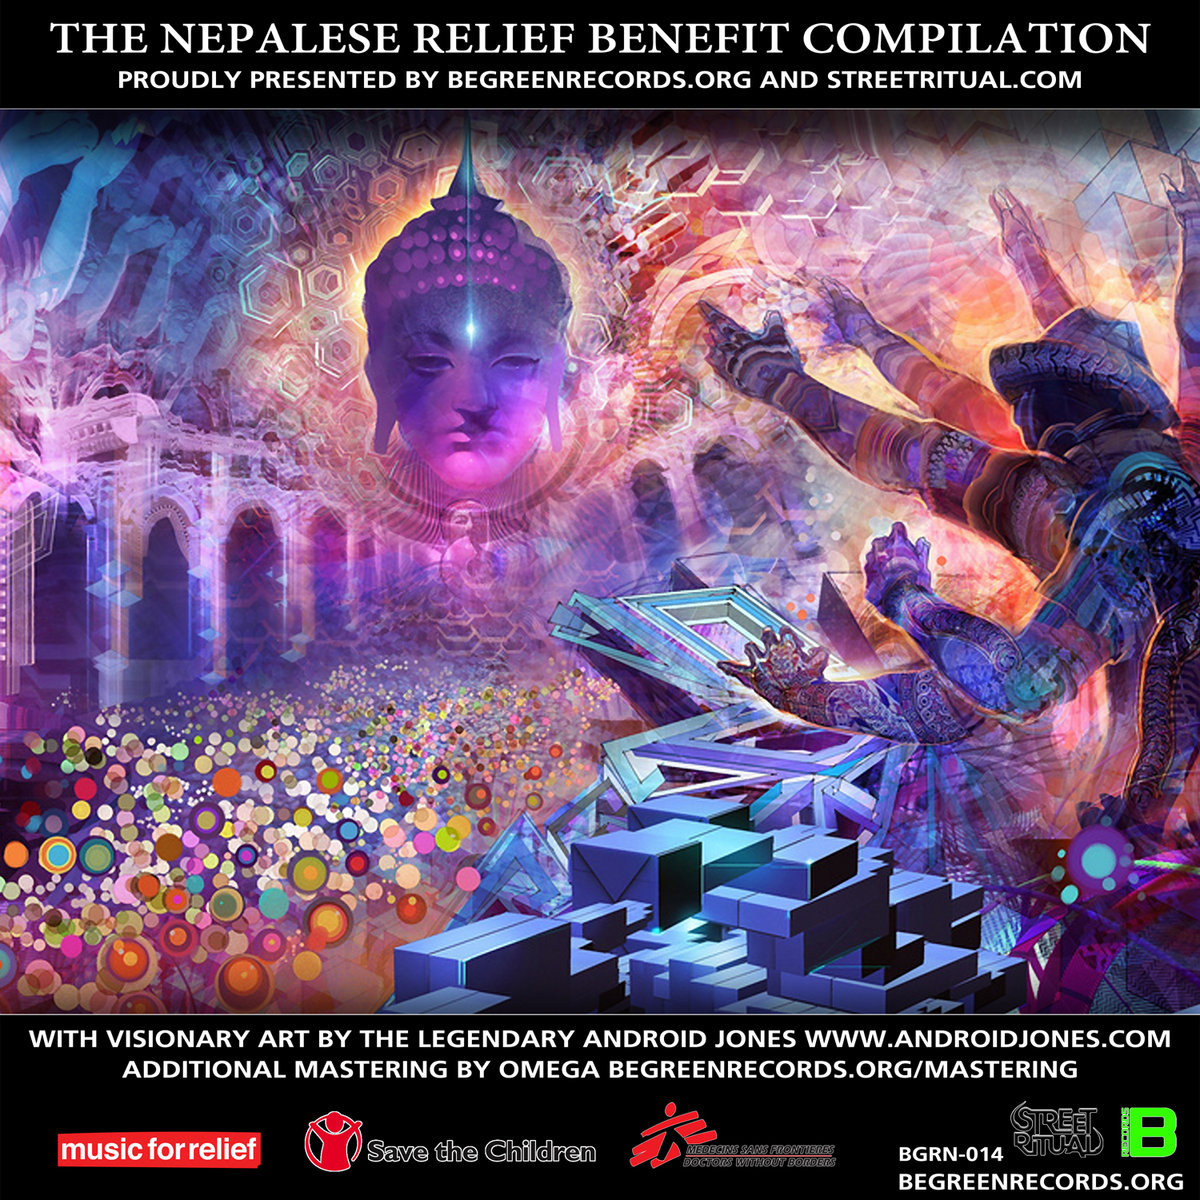 Akara - The Far Shore (Lubdub Remix) @ 'Various Artists - The Nepalese Relief Benefit Compilation' album (bass, electronic)